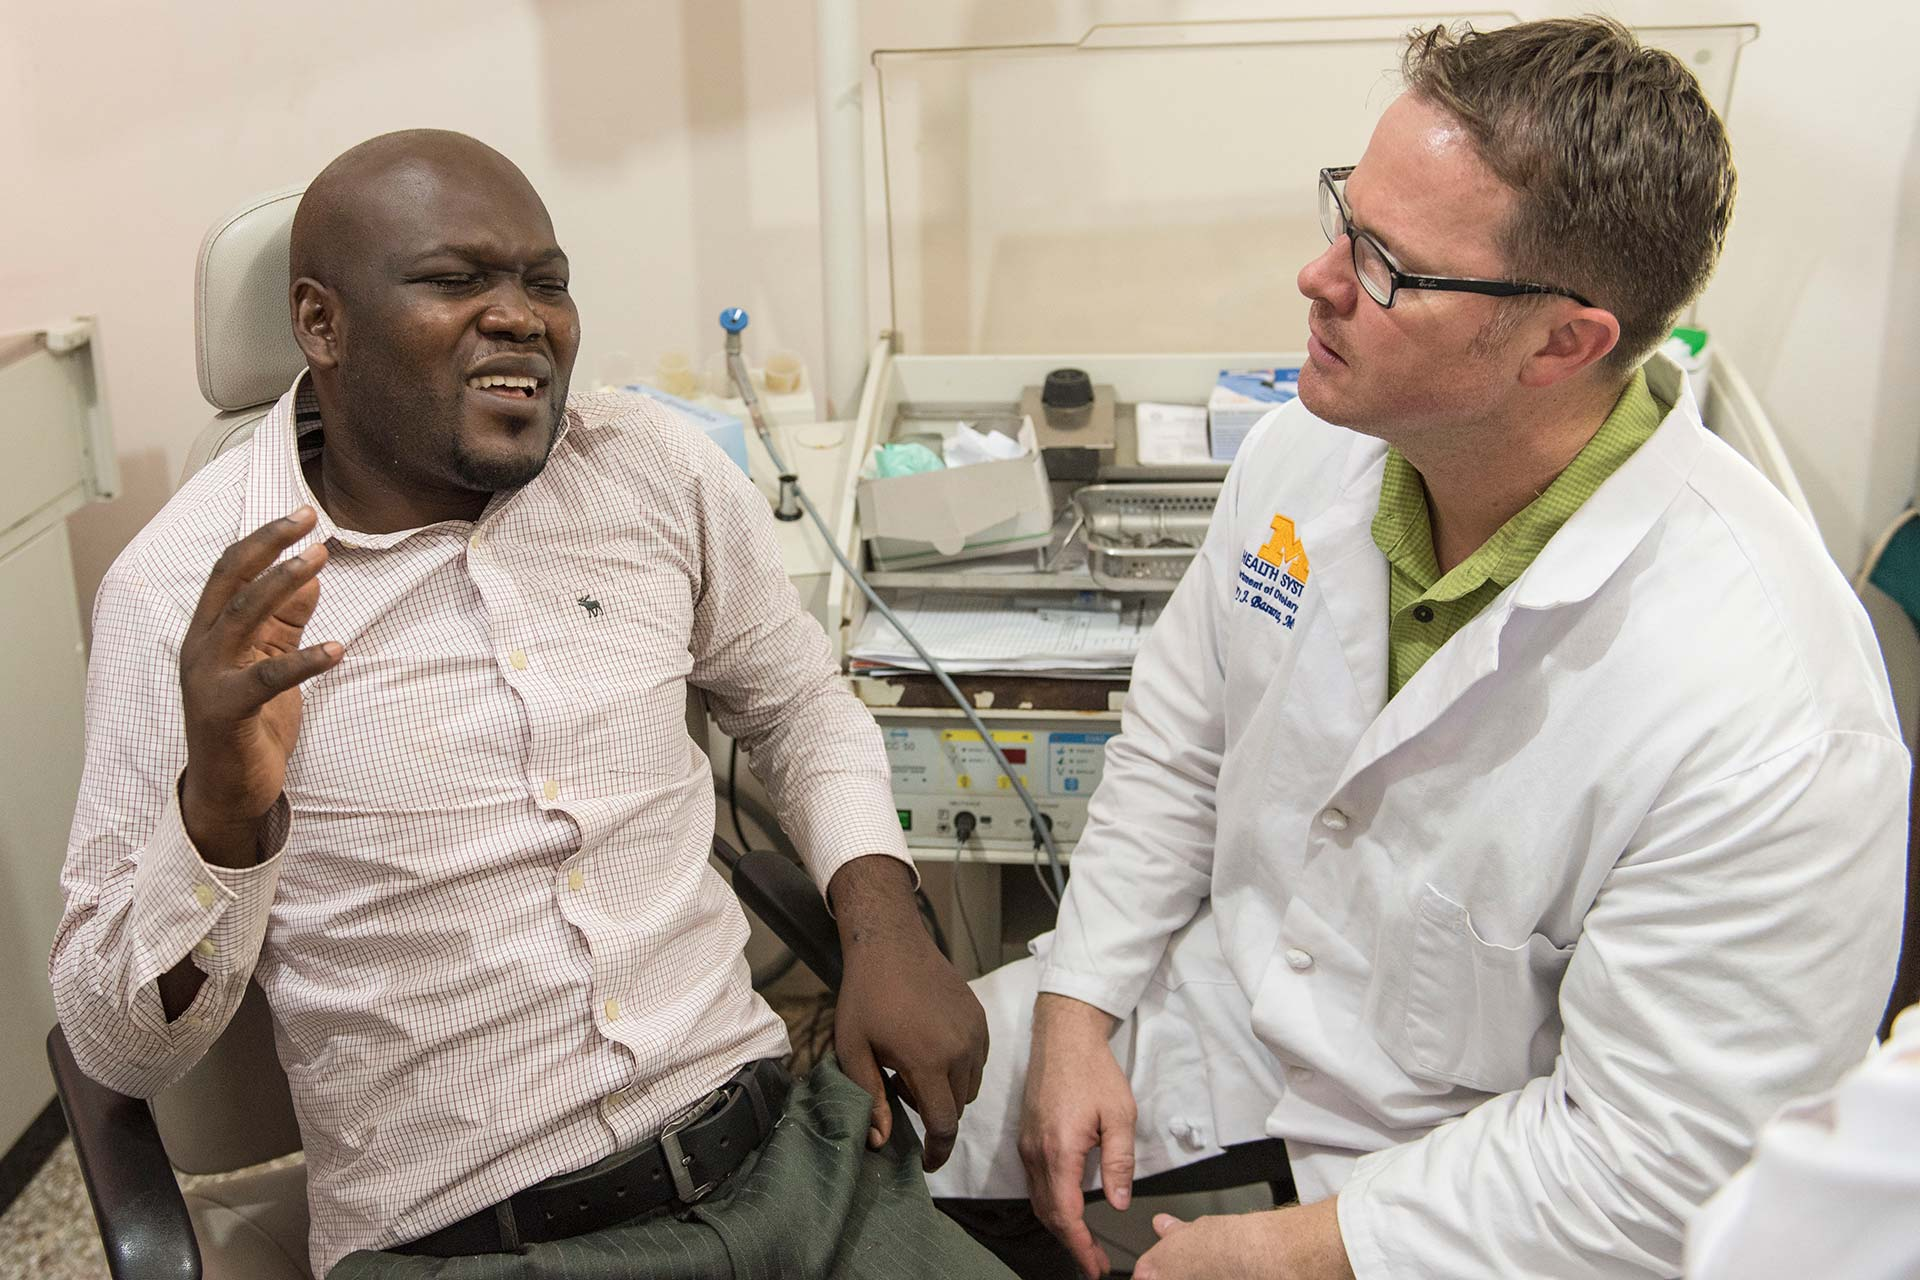 John Obeng explains his symptoms to Dr. Greg Basura